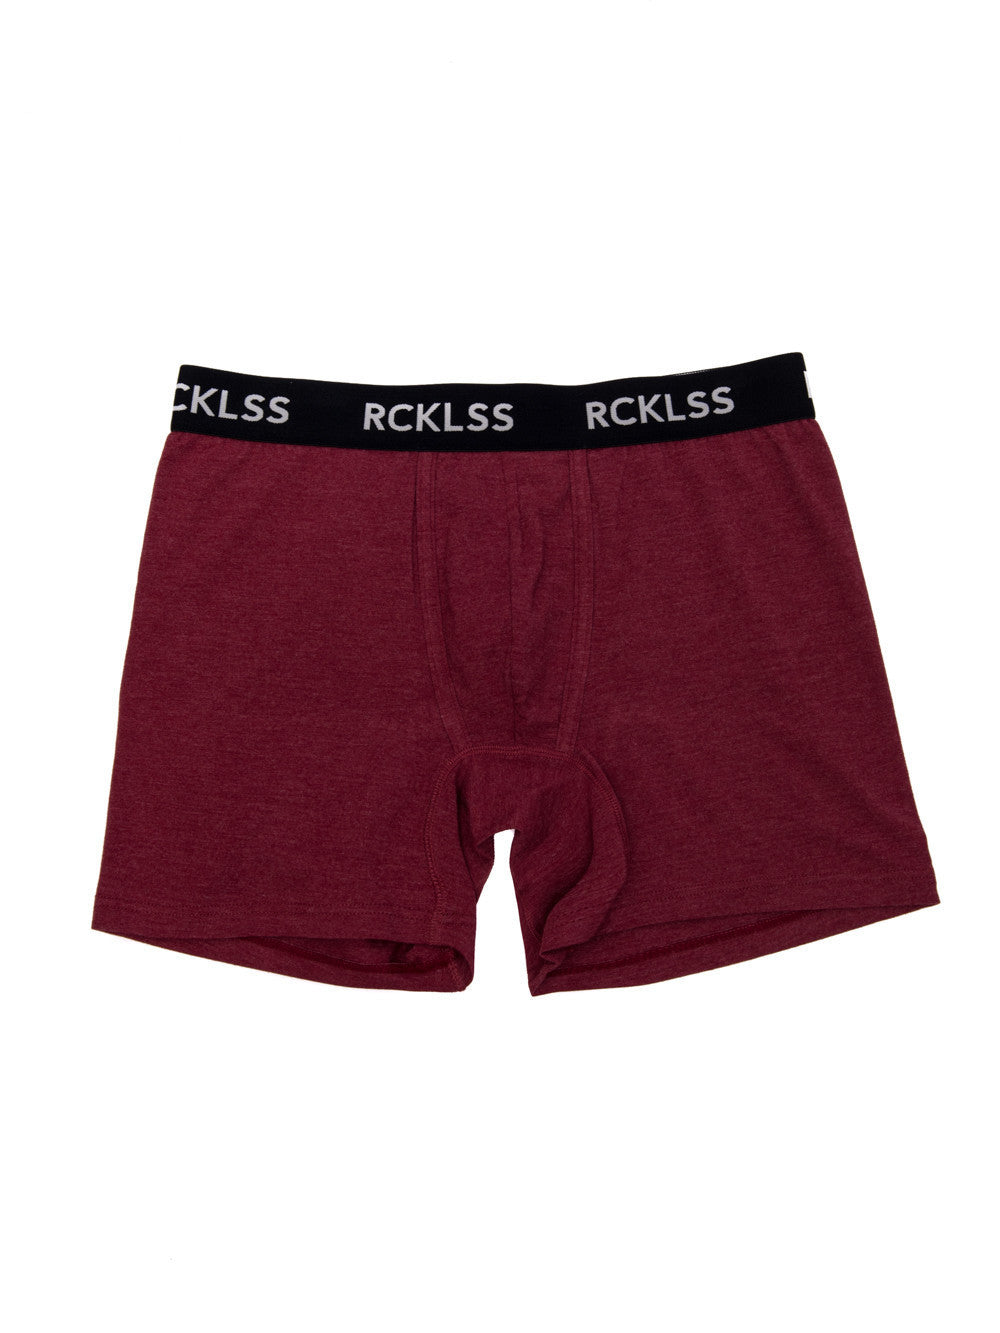 Young and Reckless Mens - Accessories - Underwear Core Standard Boxer Brief Bundle- Mid Length